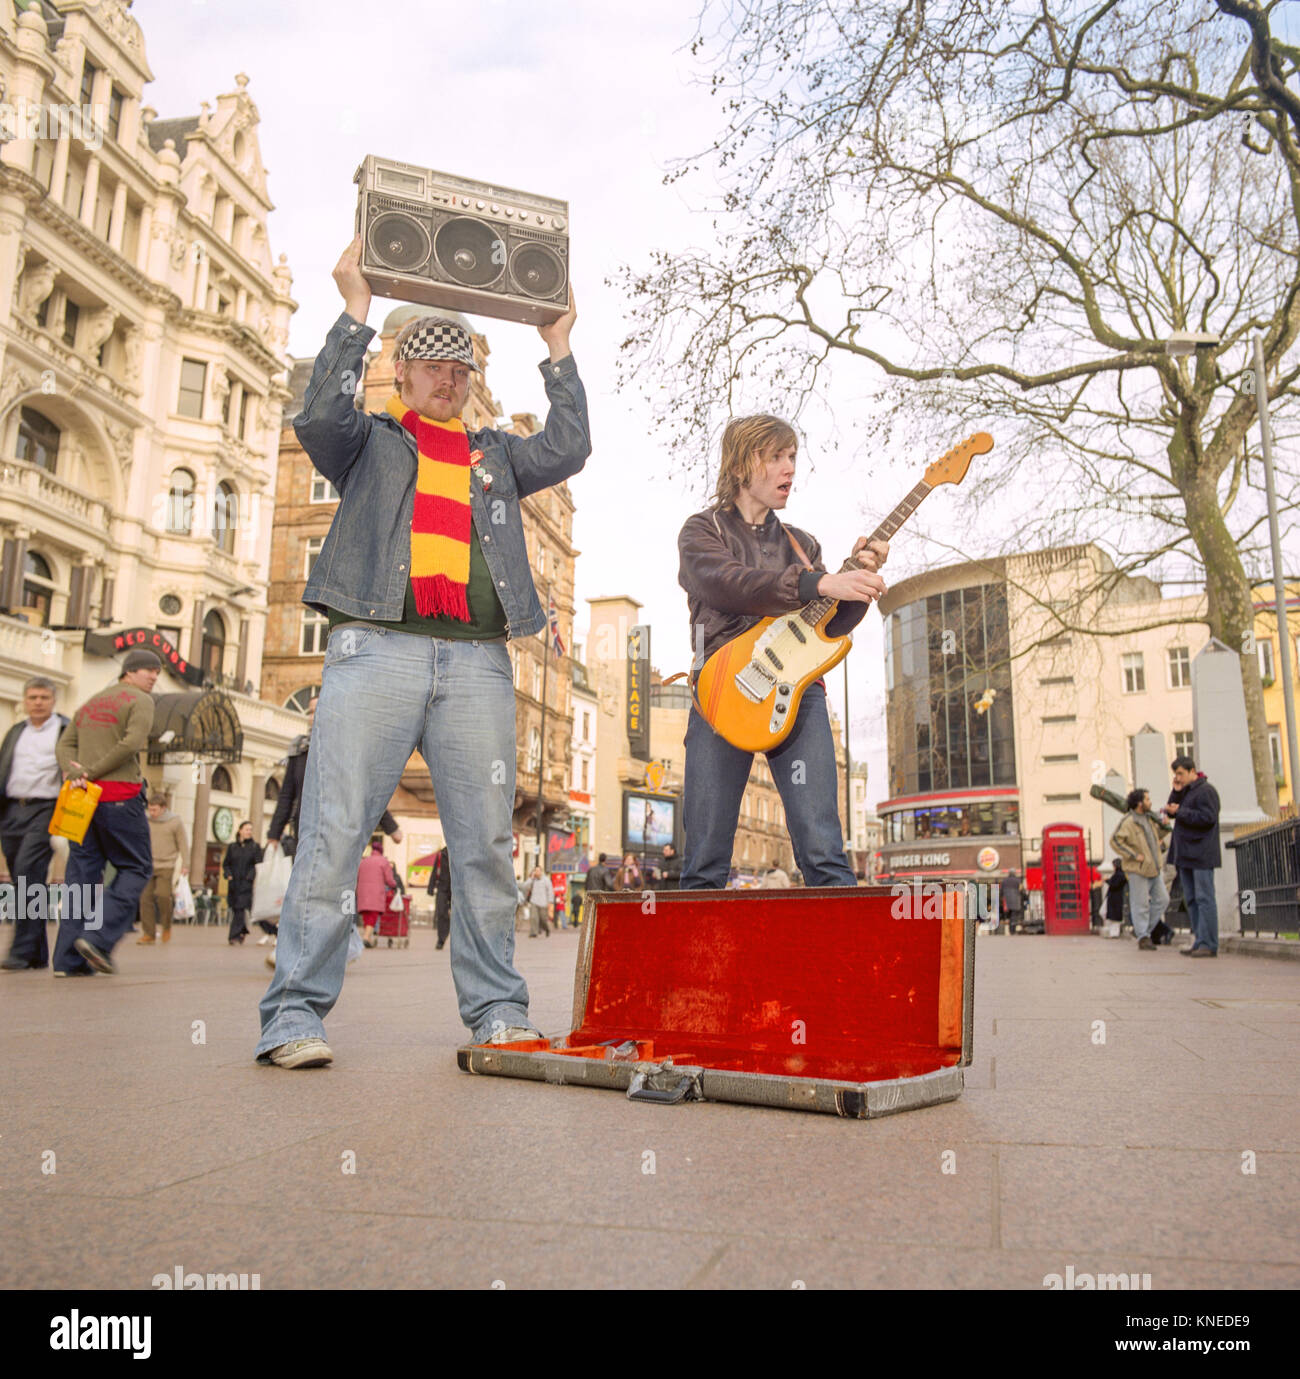 Junior Senior a pop duo from Denmark, photographed busking in , Leicester Square,London England, United Kingdom. Stock Photo